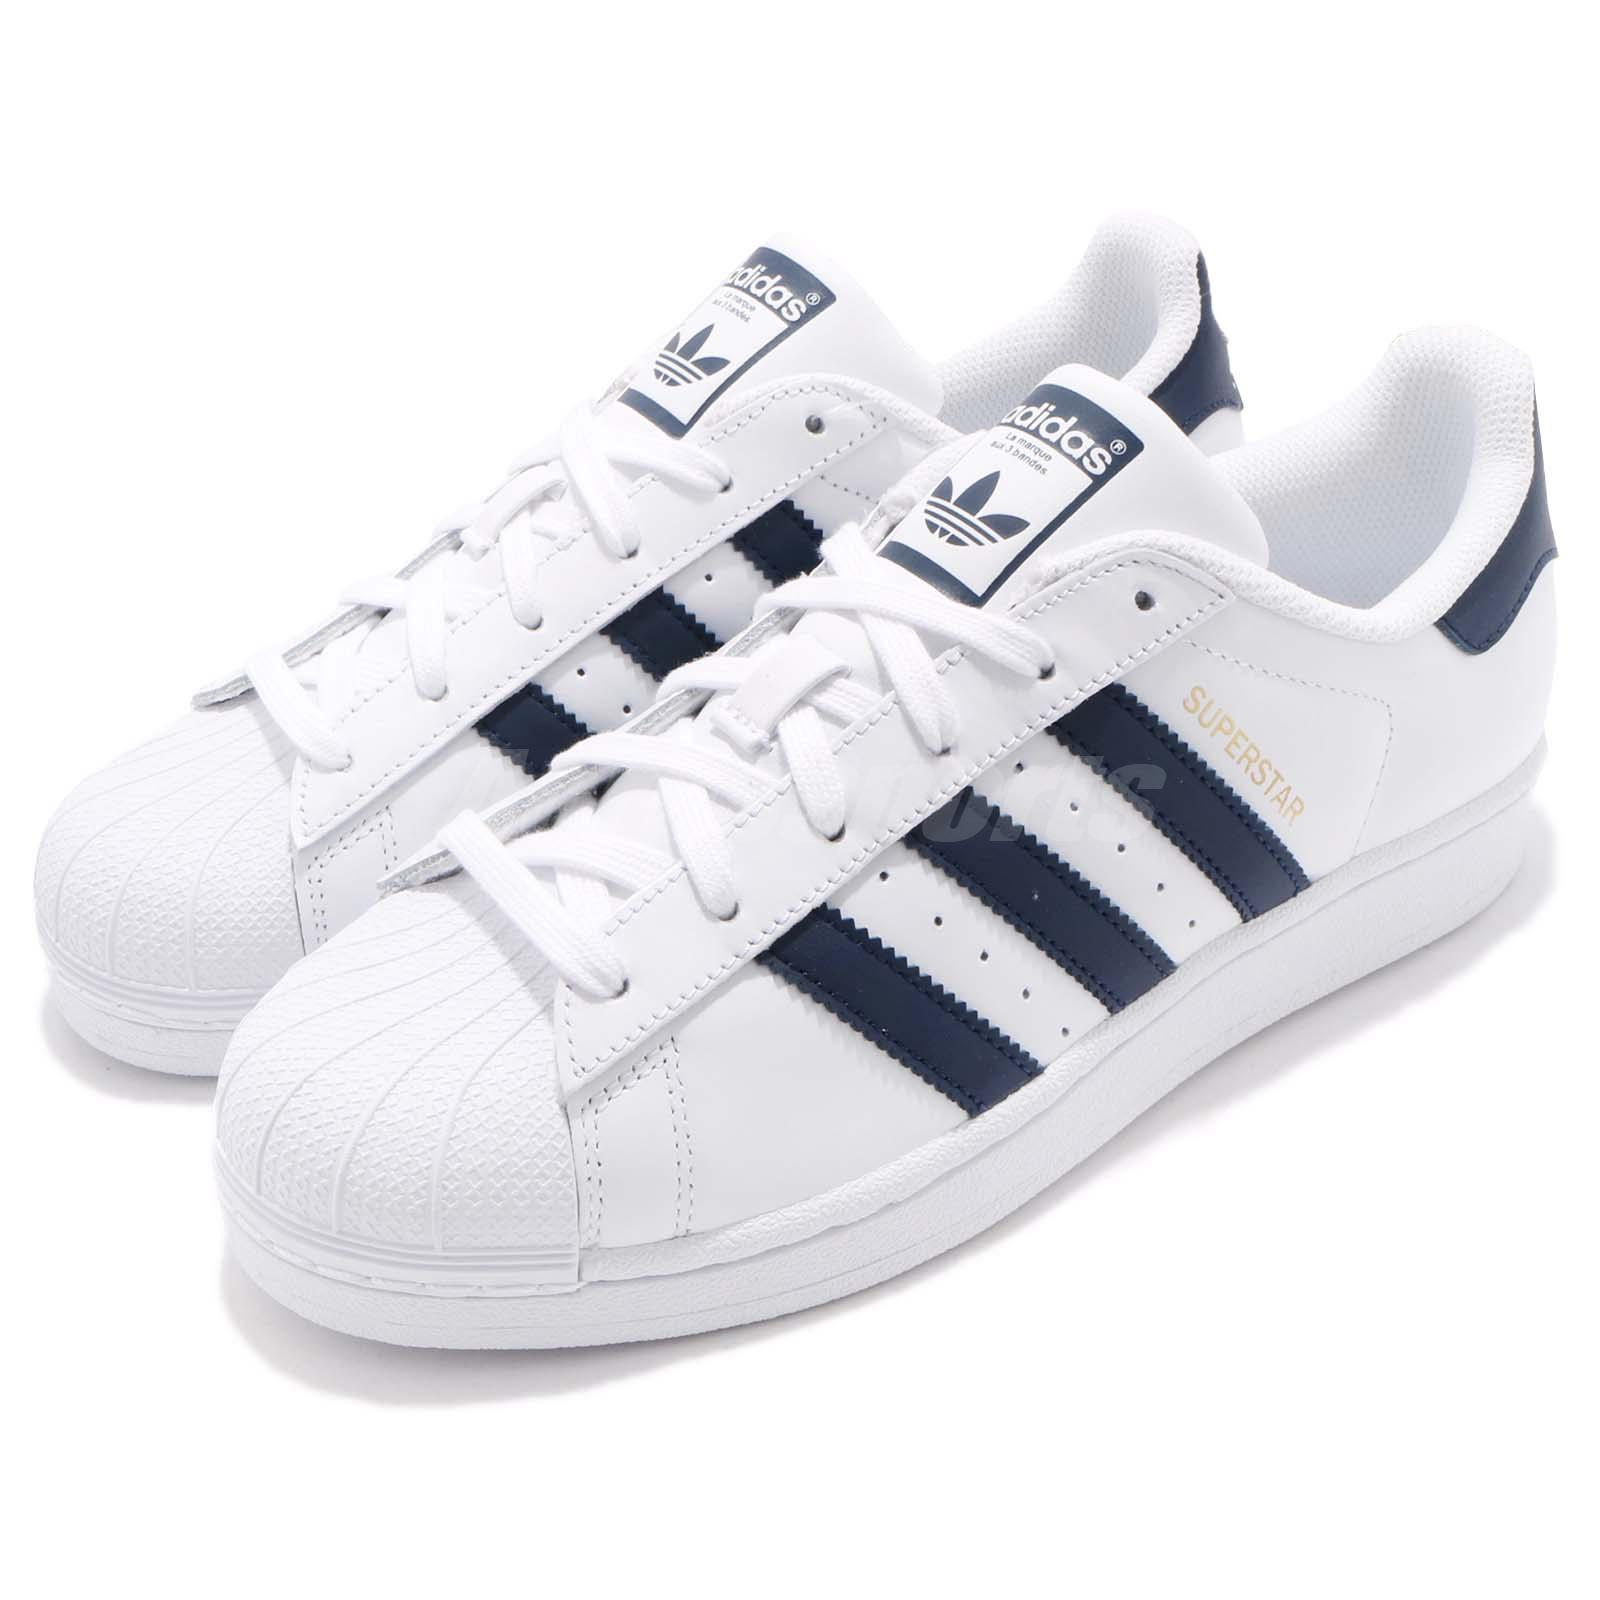 scarpe adidas Superstar White Black Men BB2236 taglia EU 40 UK 6 1/2